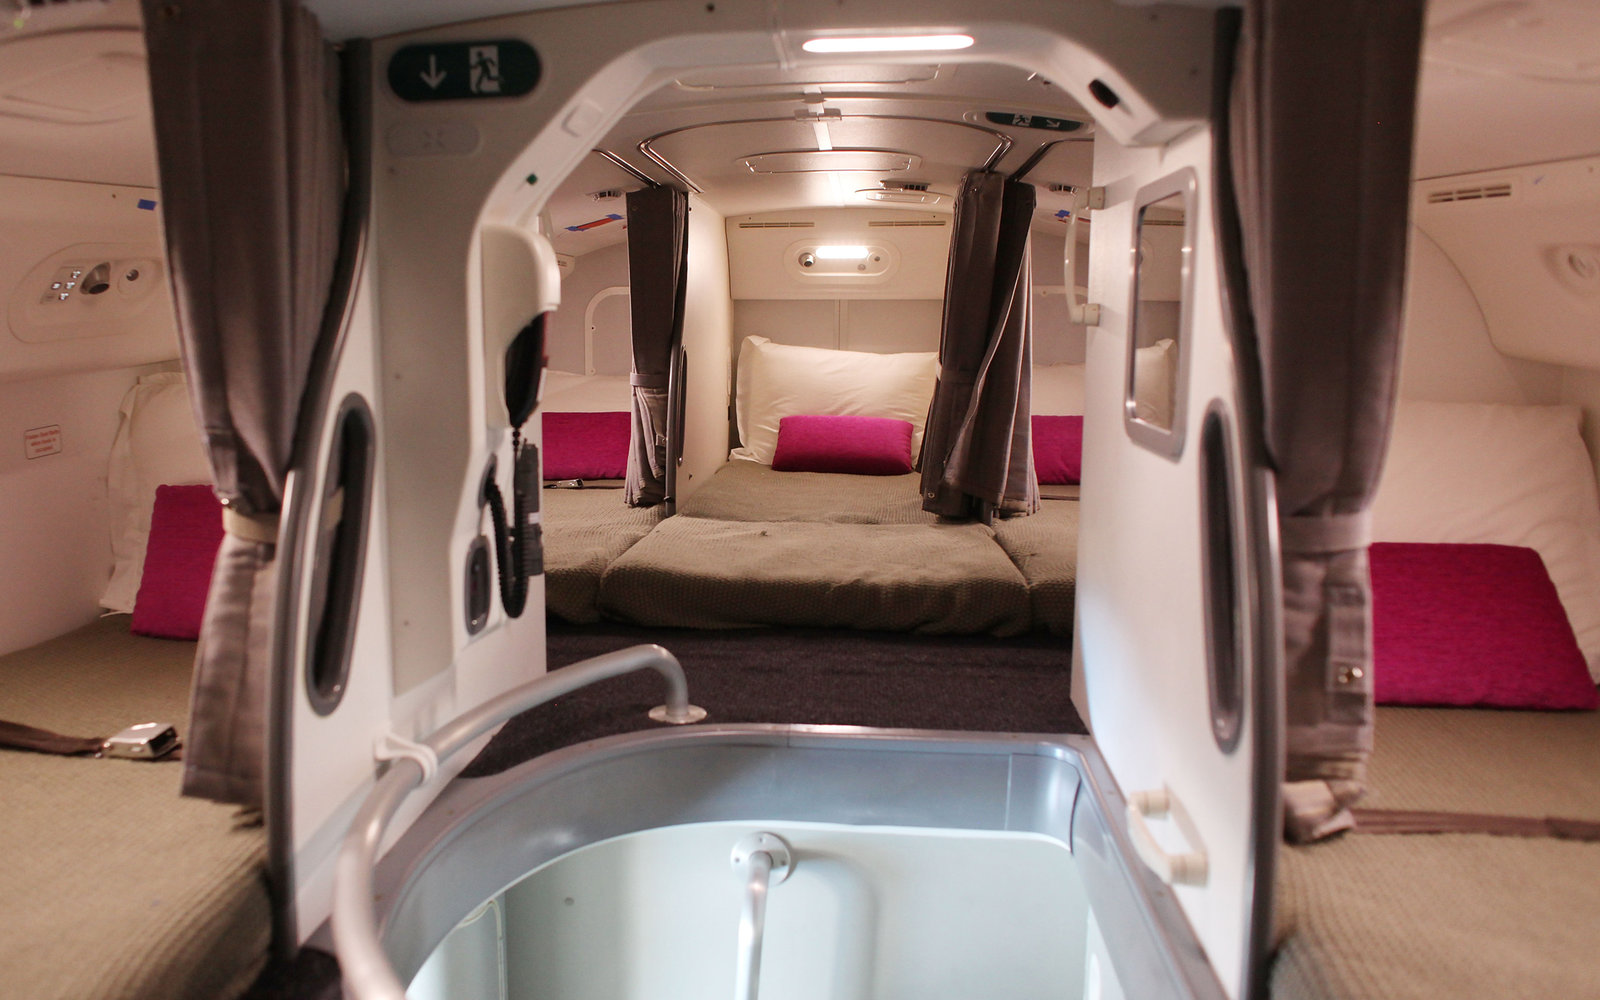 Airplane crew bedroom